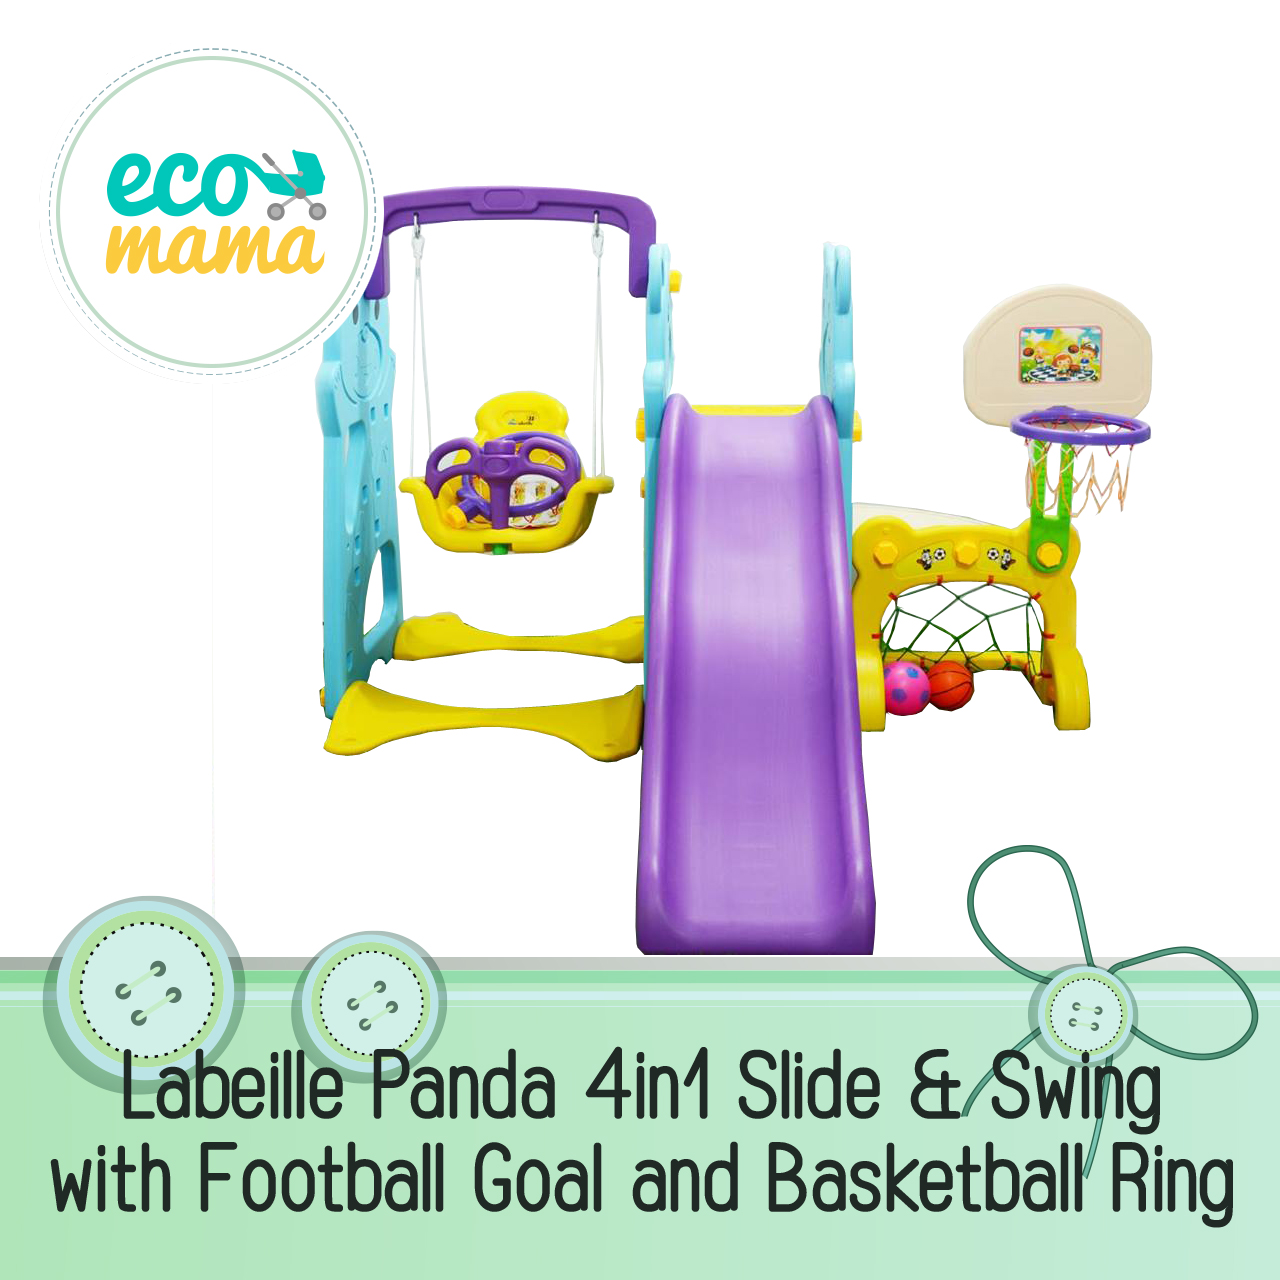 Labeille Panda 4in1 Swing Slide with Football Goal and Basketball Ring